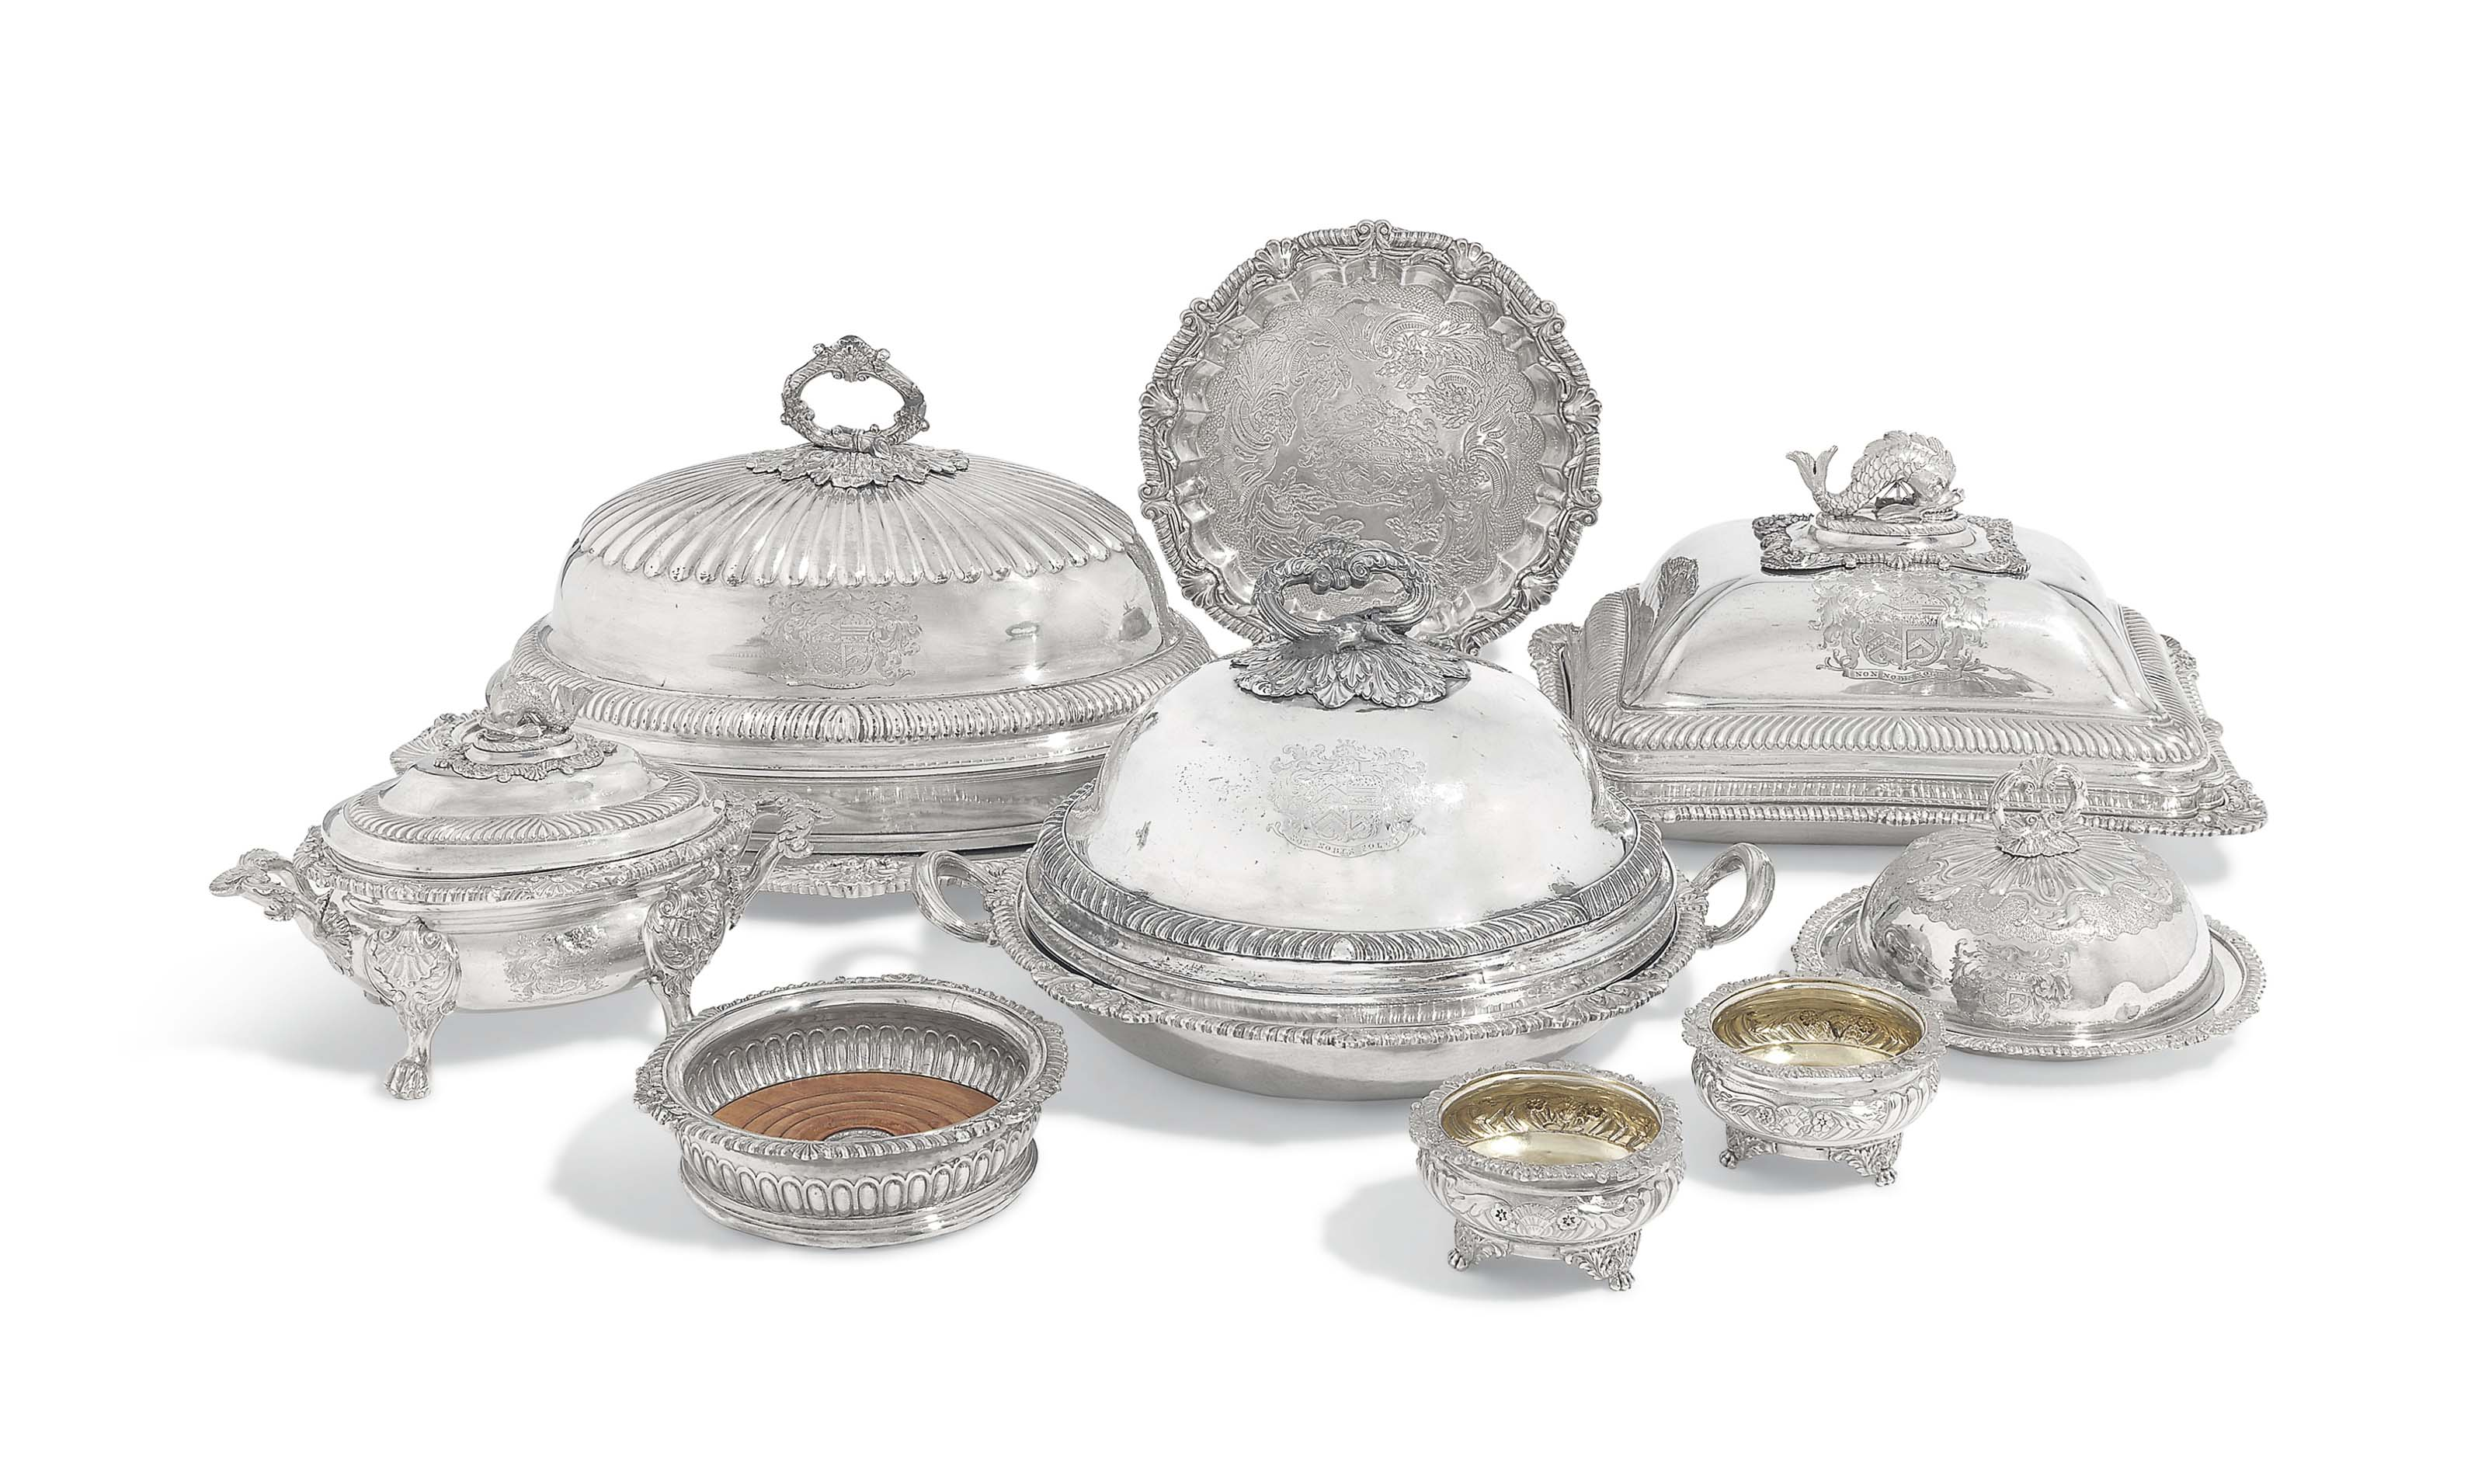 SILVER FROM THE LANGSTON DINNER-SERVICE A GEORGE III SILVER PART DINNER-SERVICE